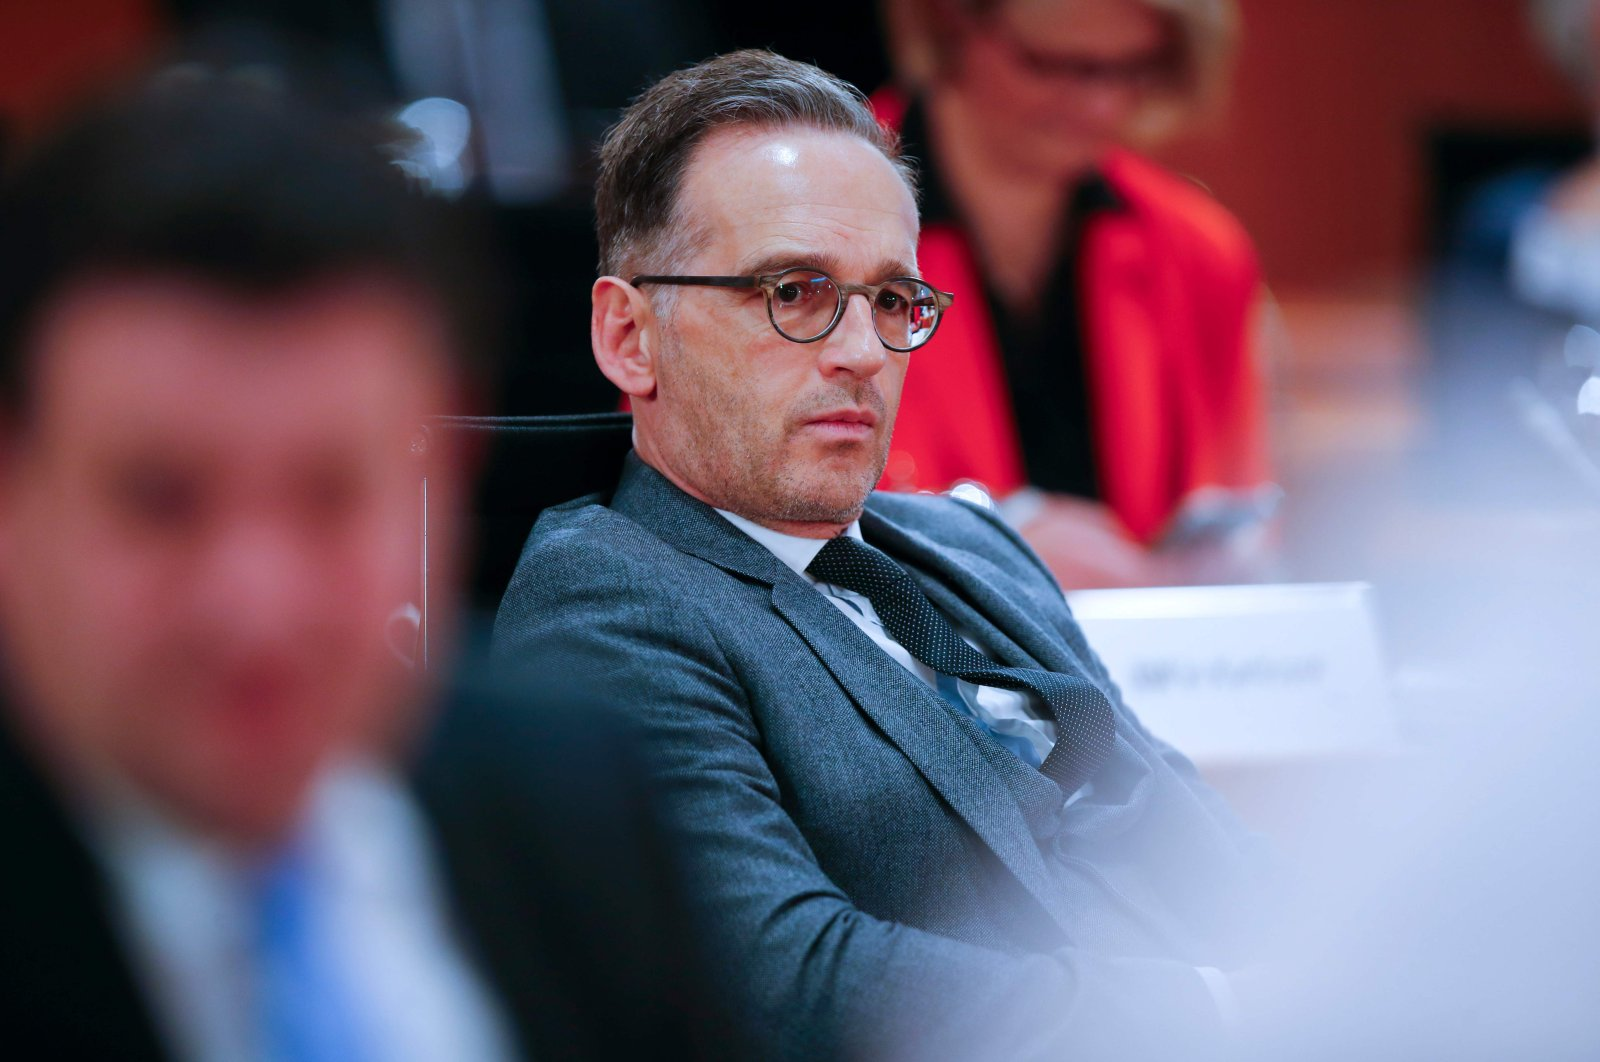 German Foreign Minister Heiko Maas attends a weekly cabinet meeting in Berlin, May 6, 2020. (AFP Photo)